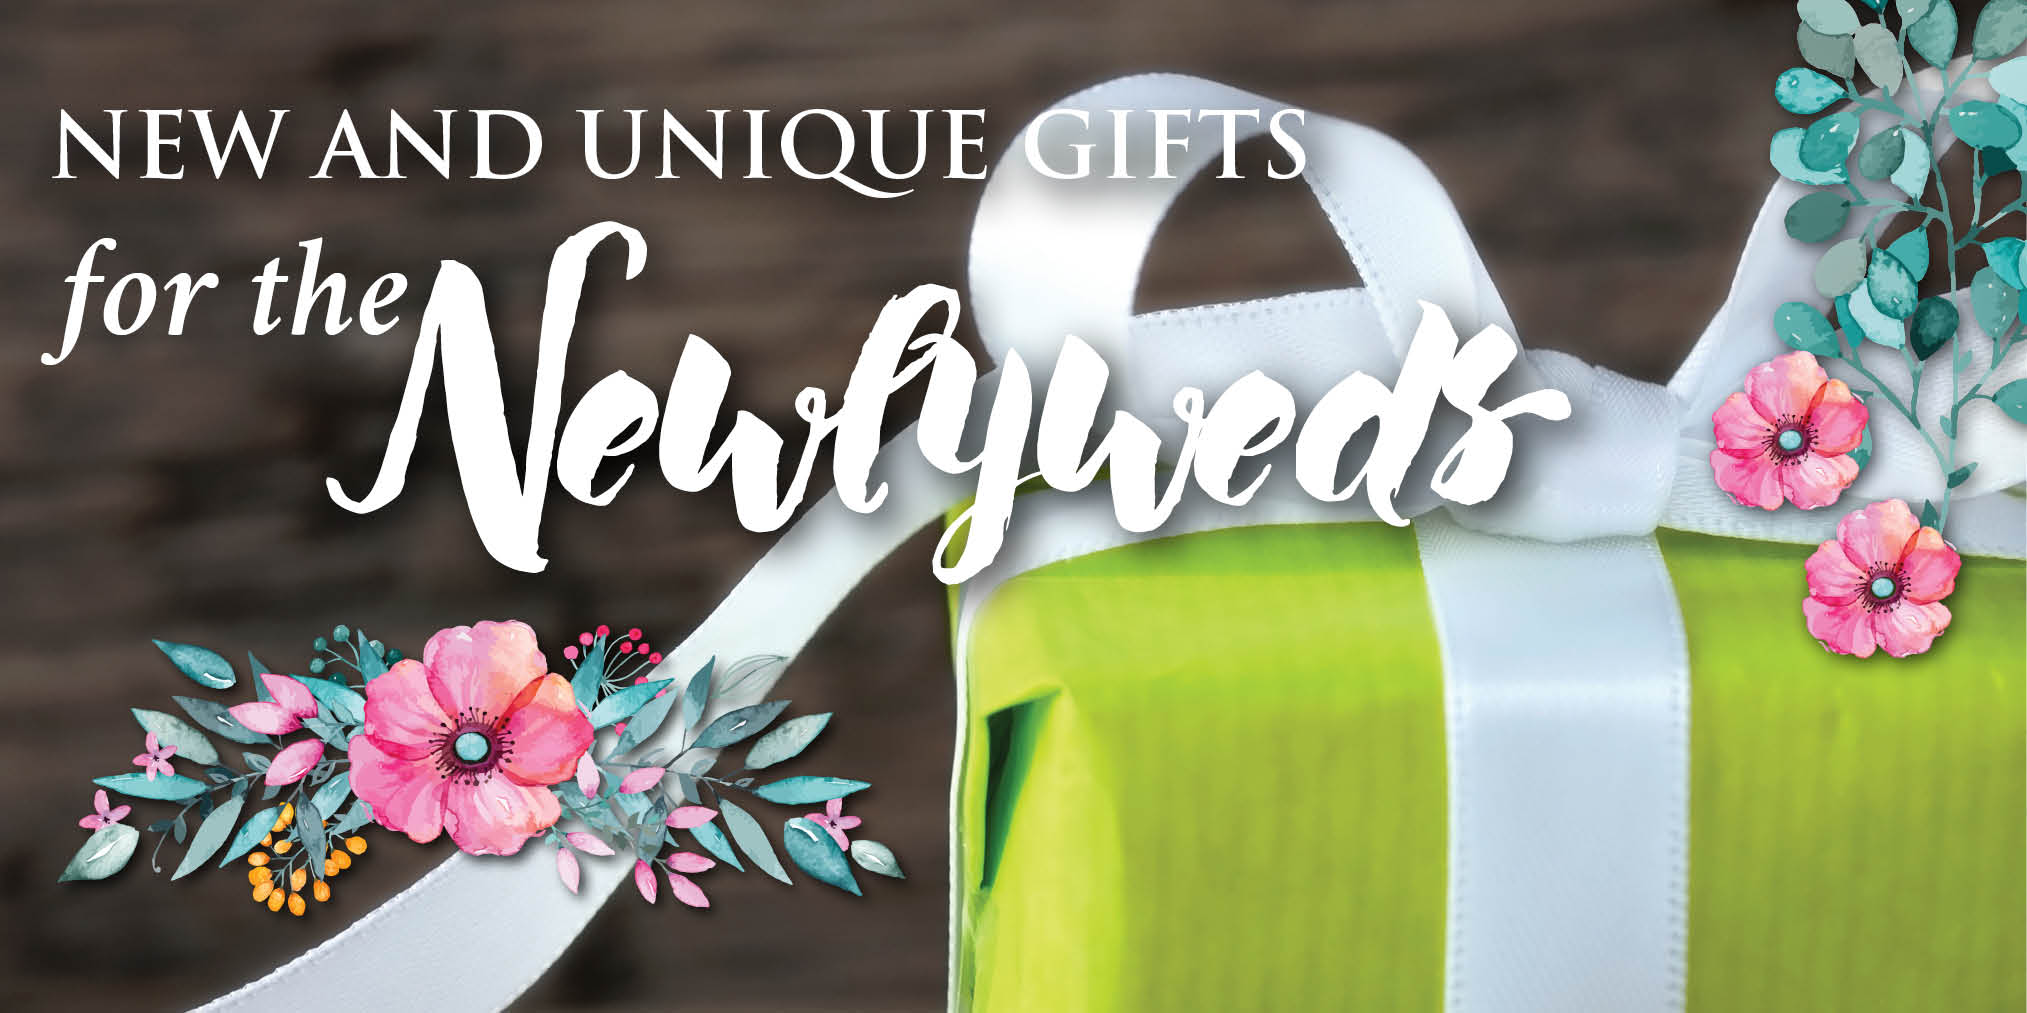 New and Unique Gifts for the Newlyweds